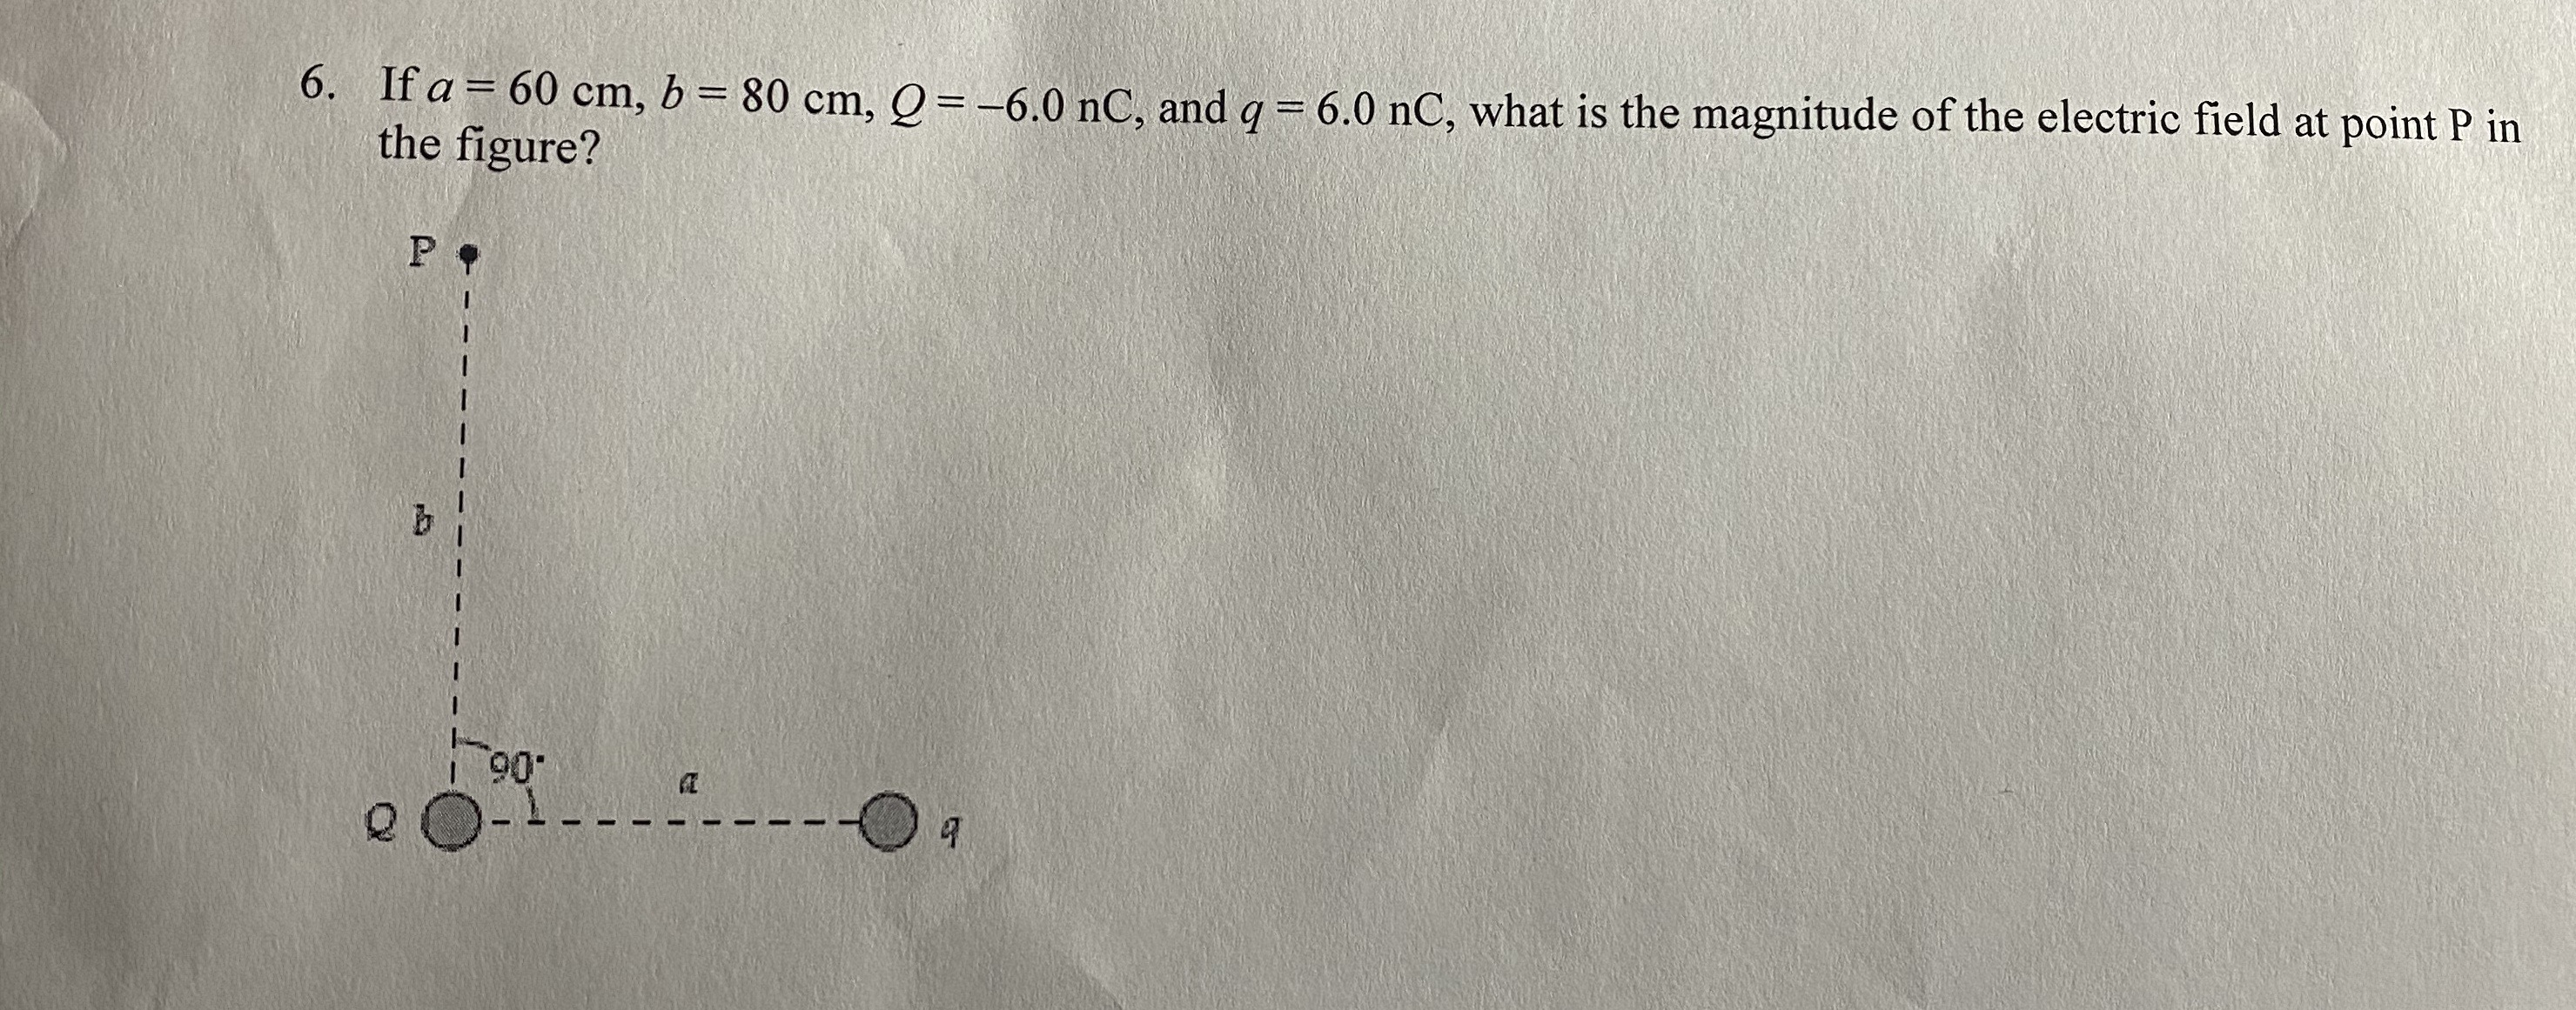 6. If a = 60 cm, 6 = 80 cm, Q = -6.0 nC, and q = 6.0 nC, what is the magnitude of the electric field at point P in the figure? %3D P 9